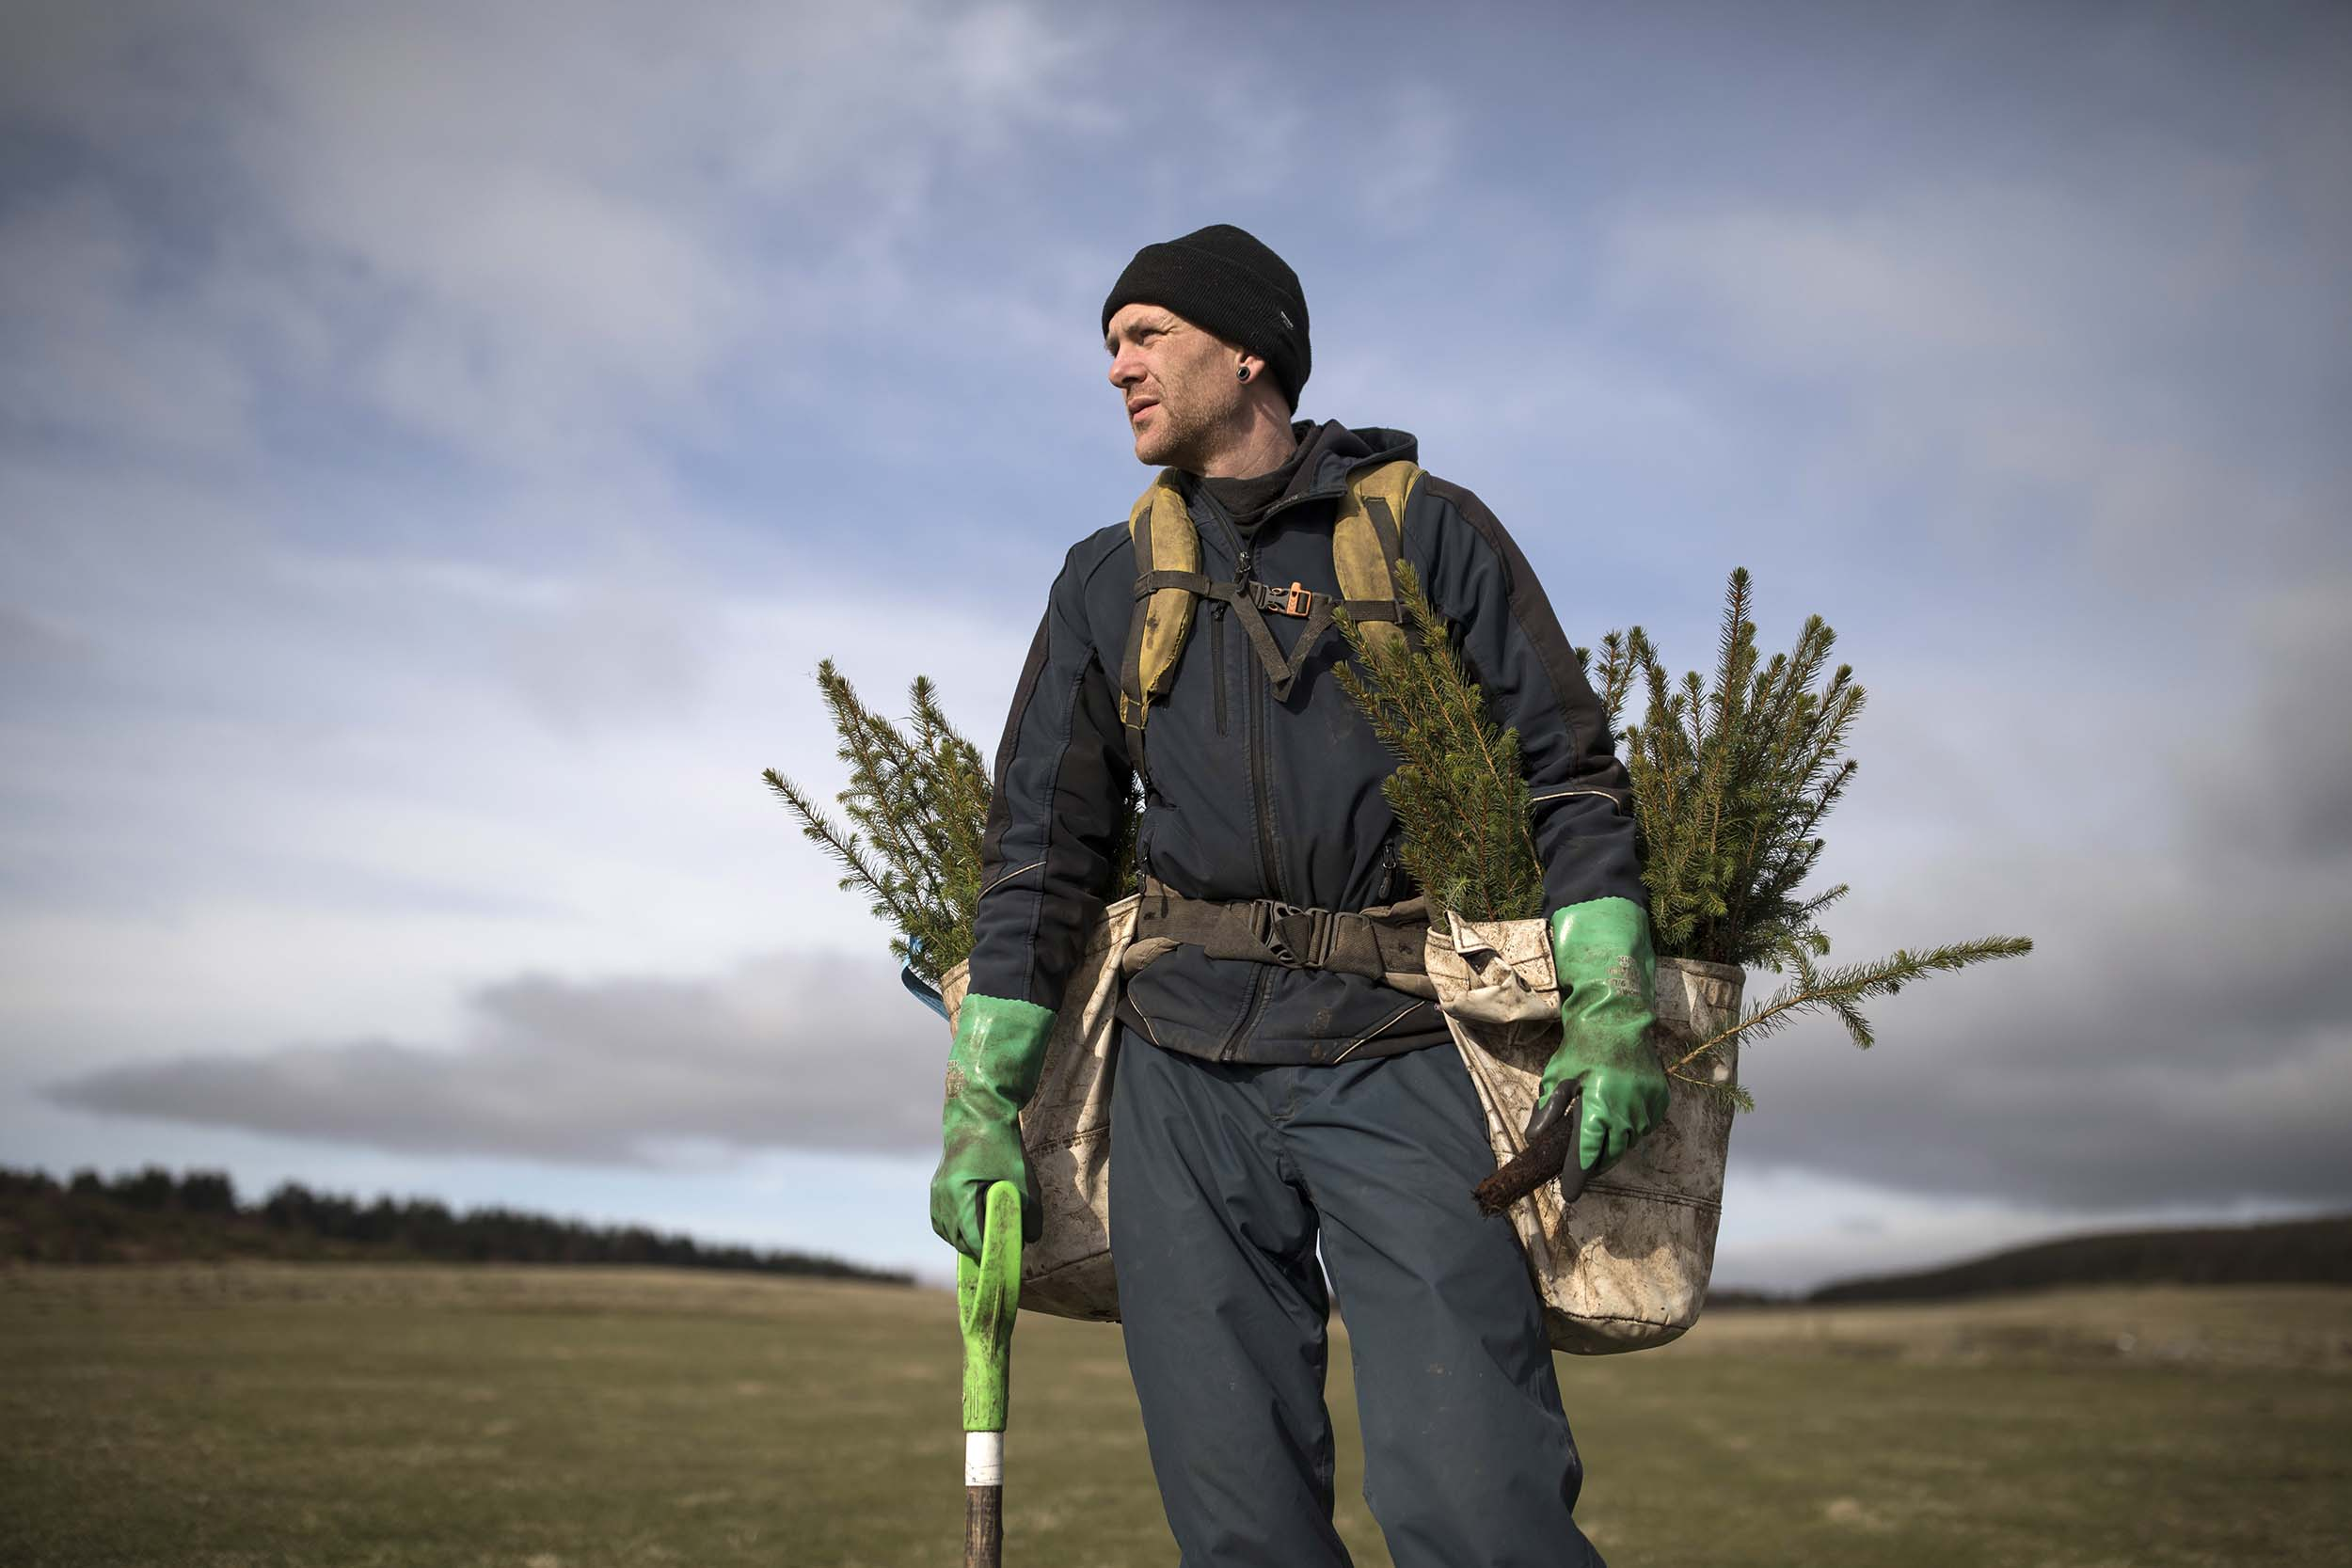 A man preparing to plant young trees - an example of green jobs